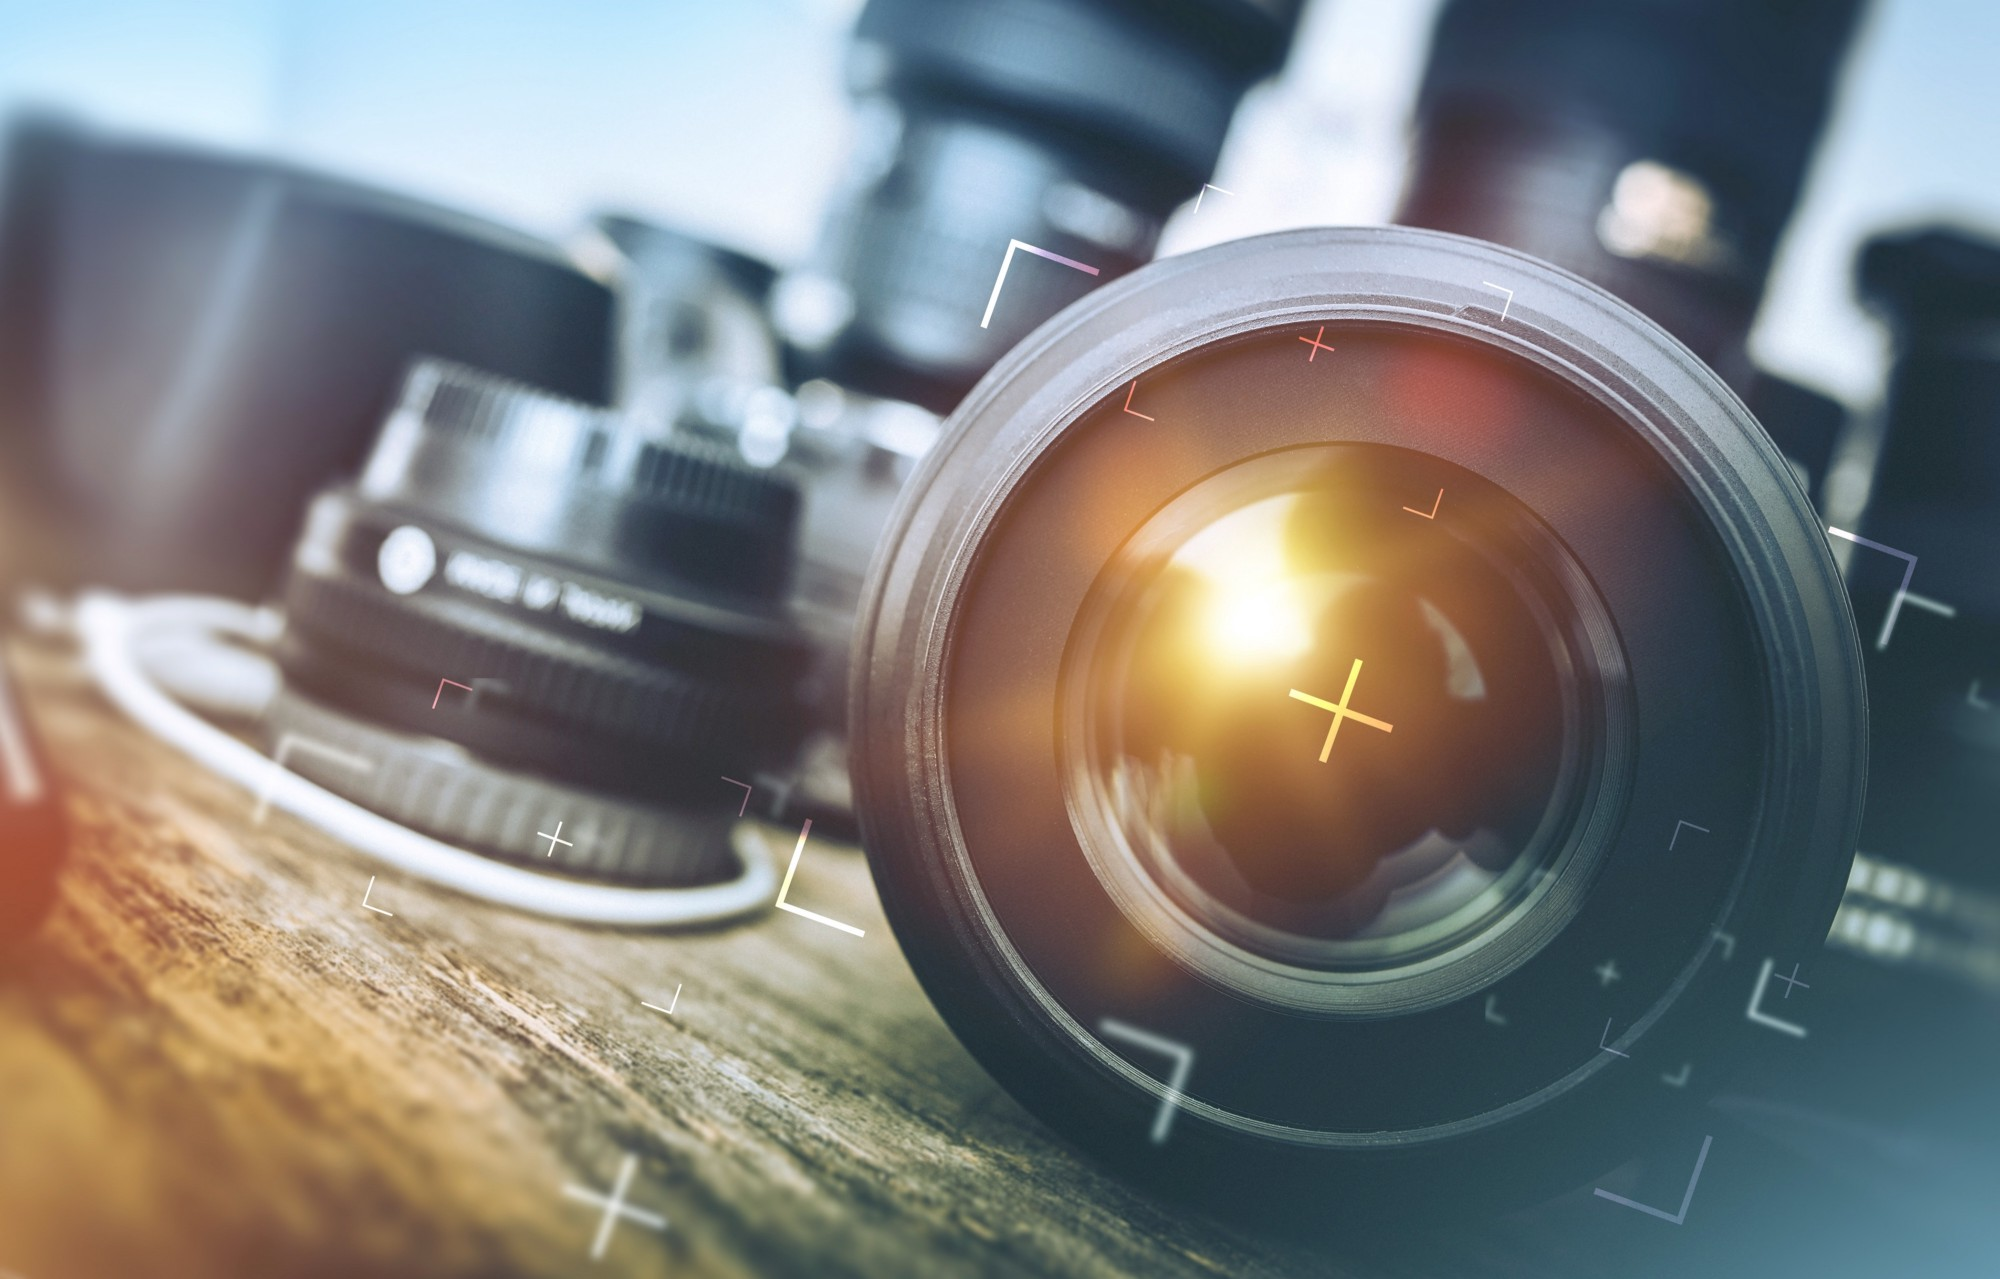 Everything you need to know about camera lenses - Haje Jan Kamps